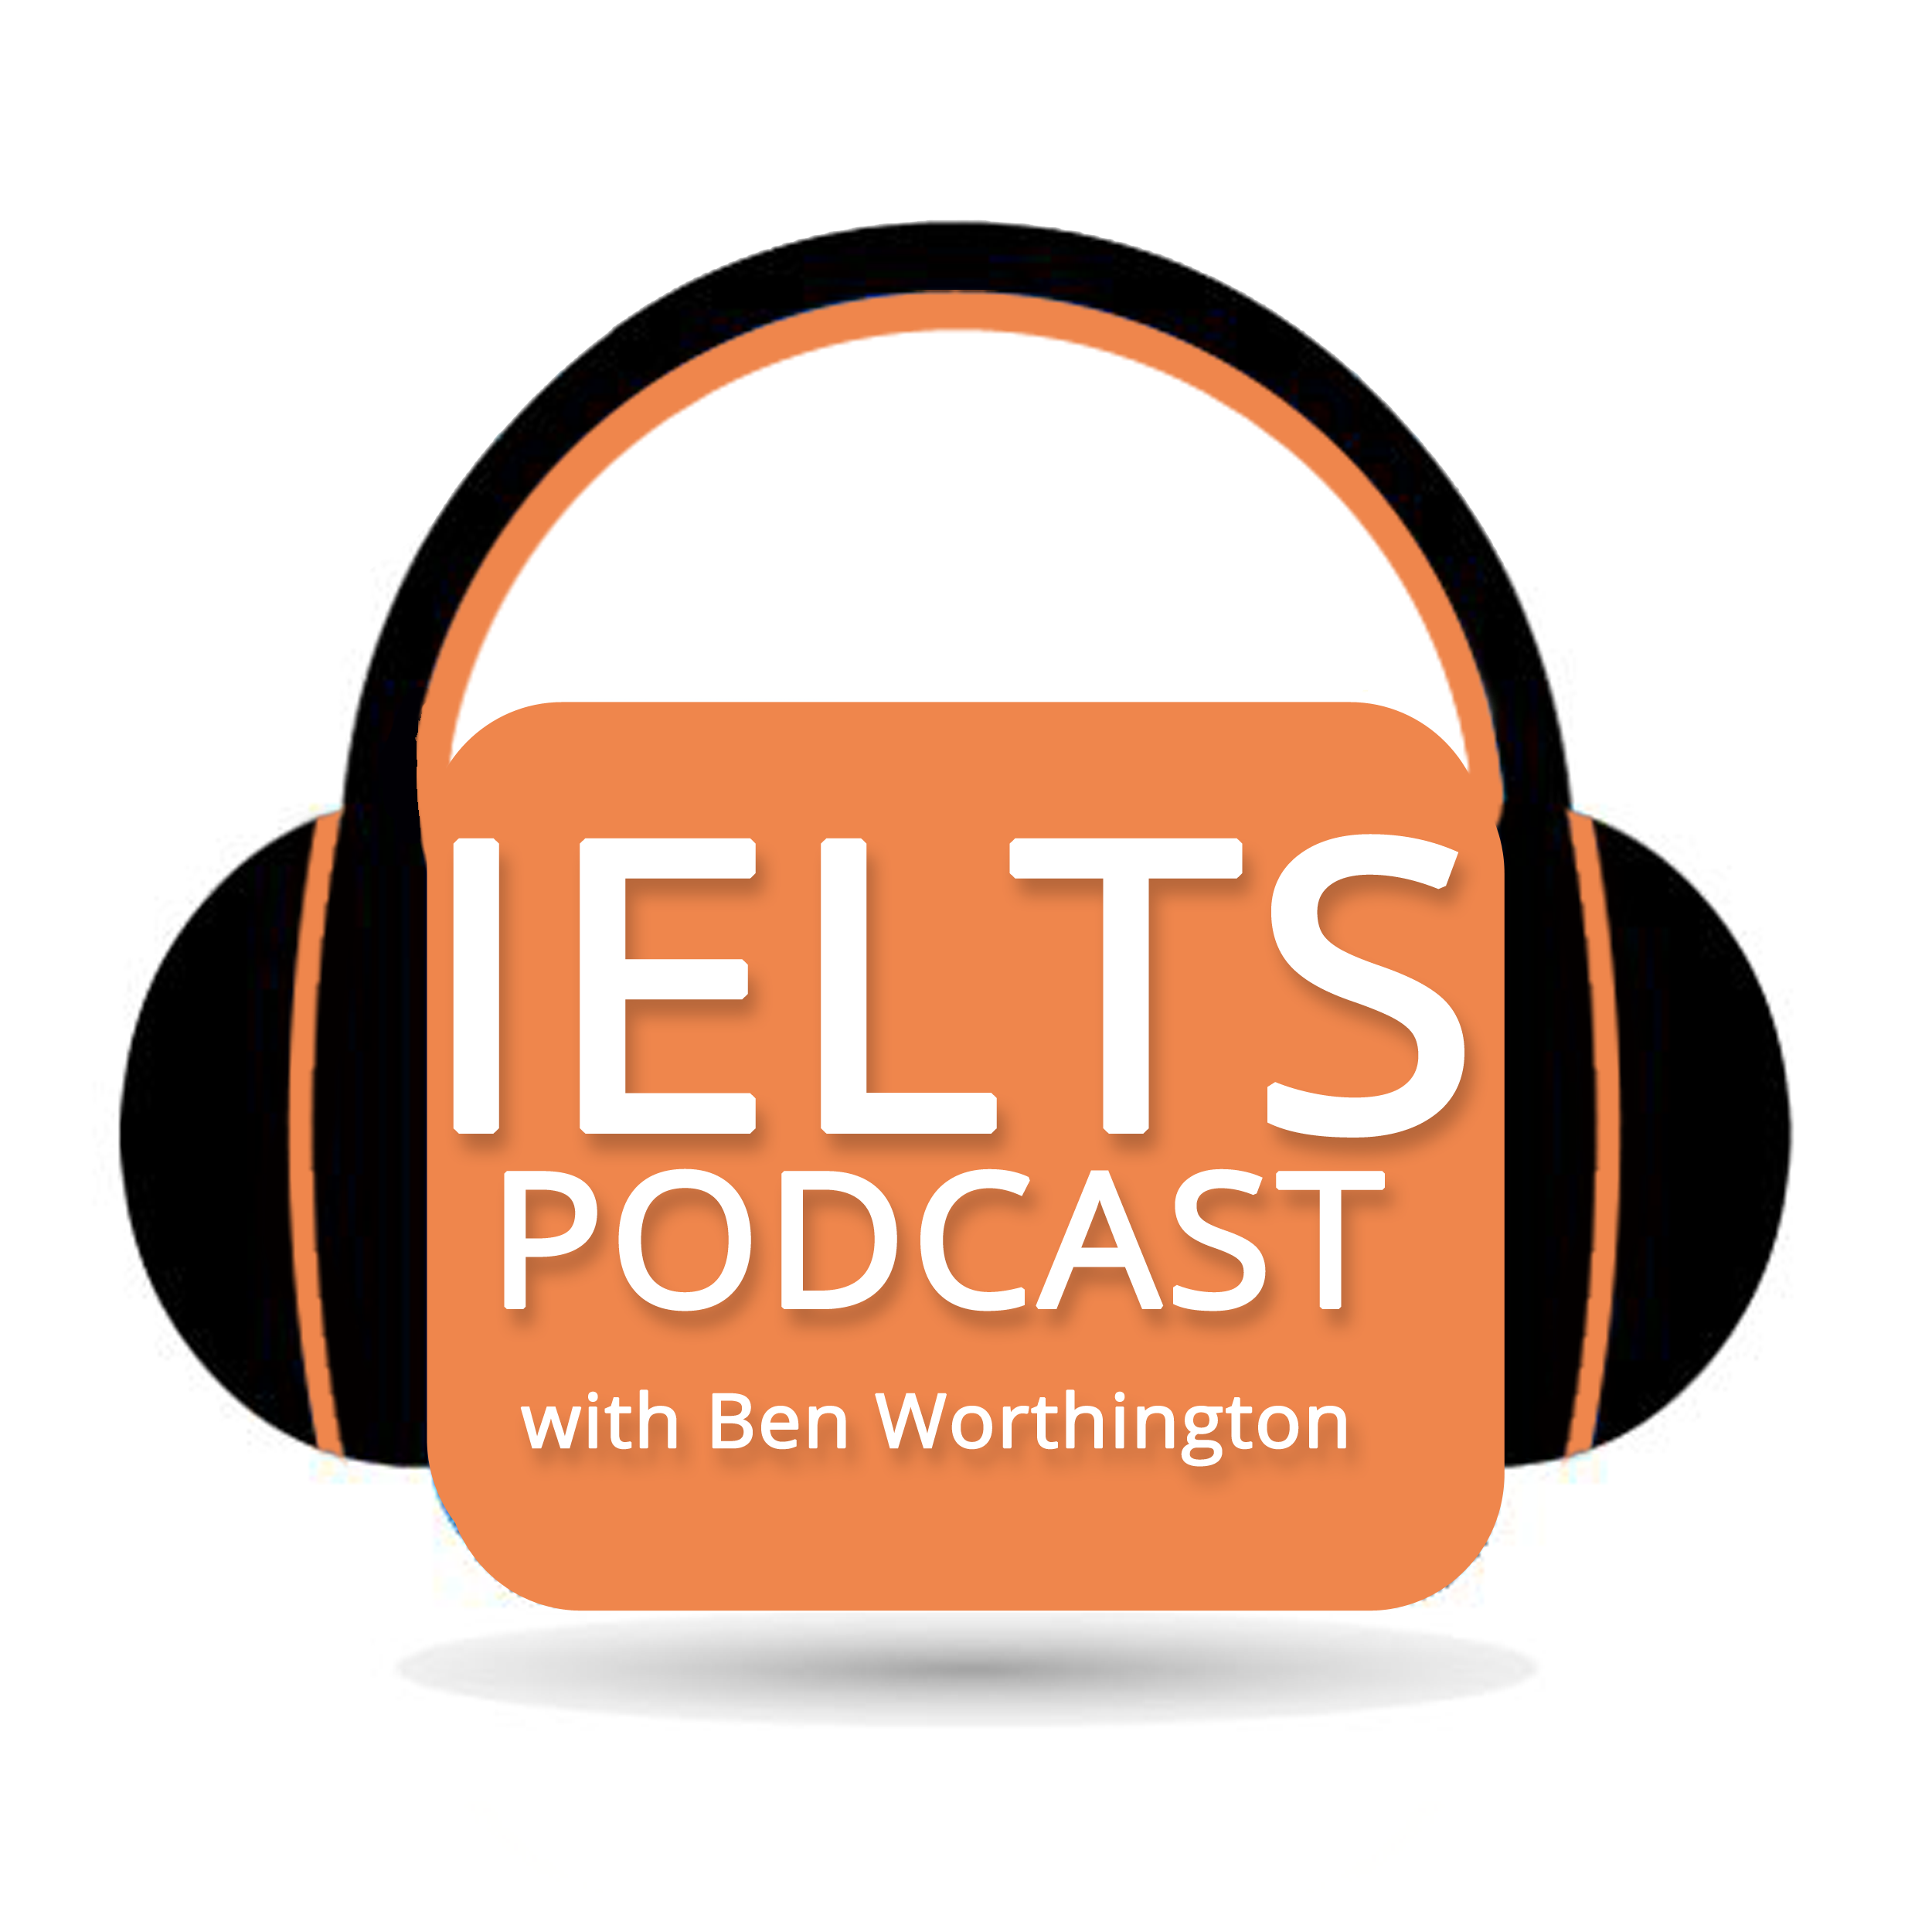 IELTS Podcast on Apple Podcasts